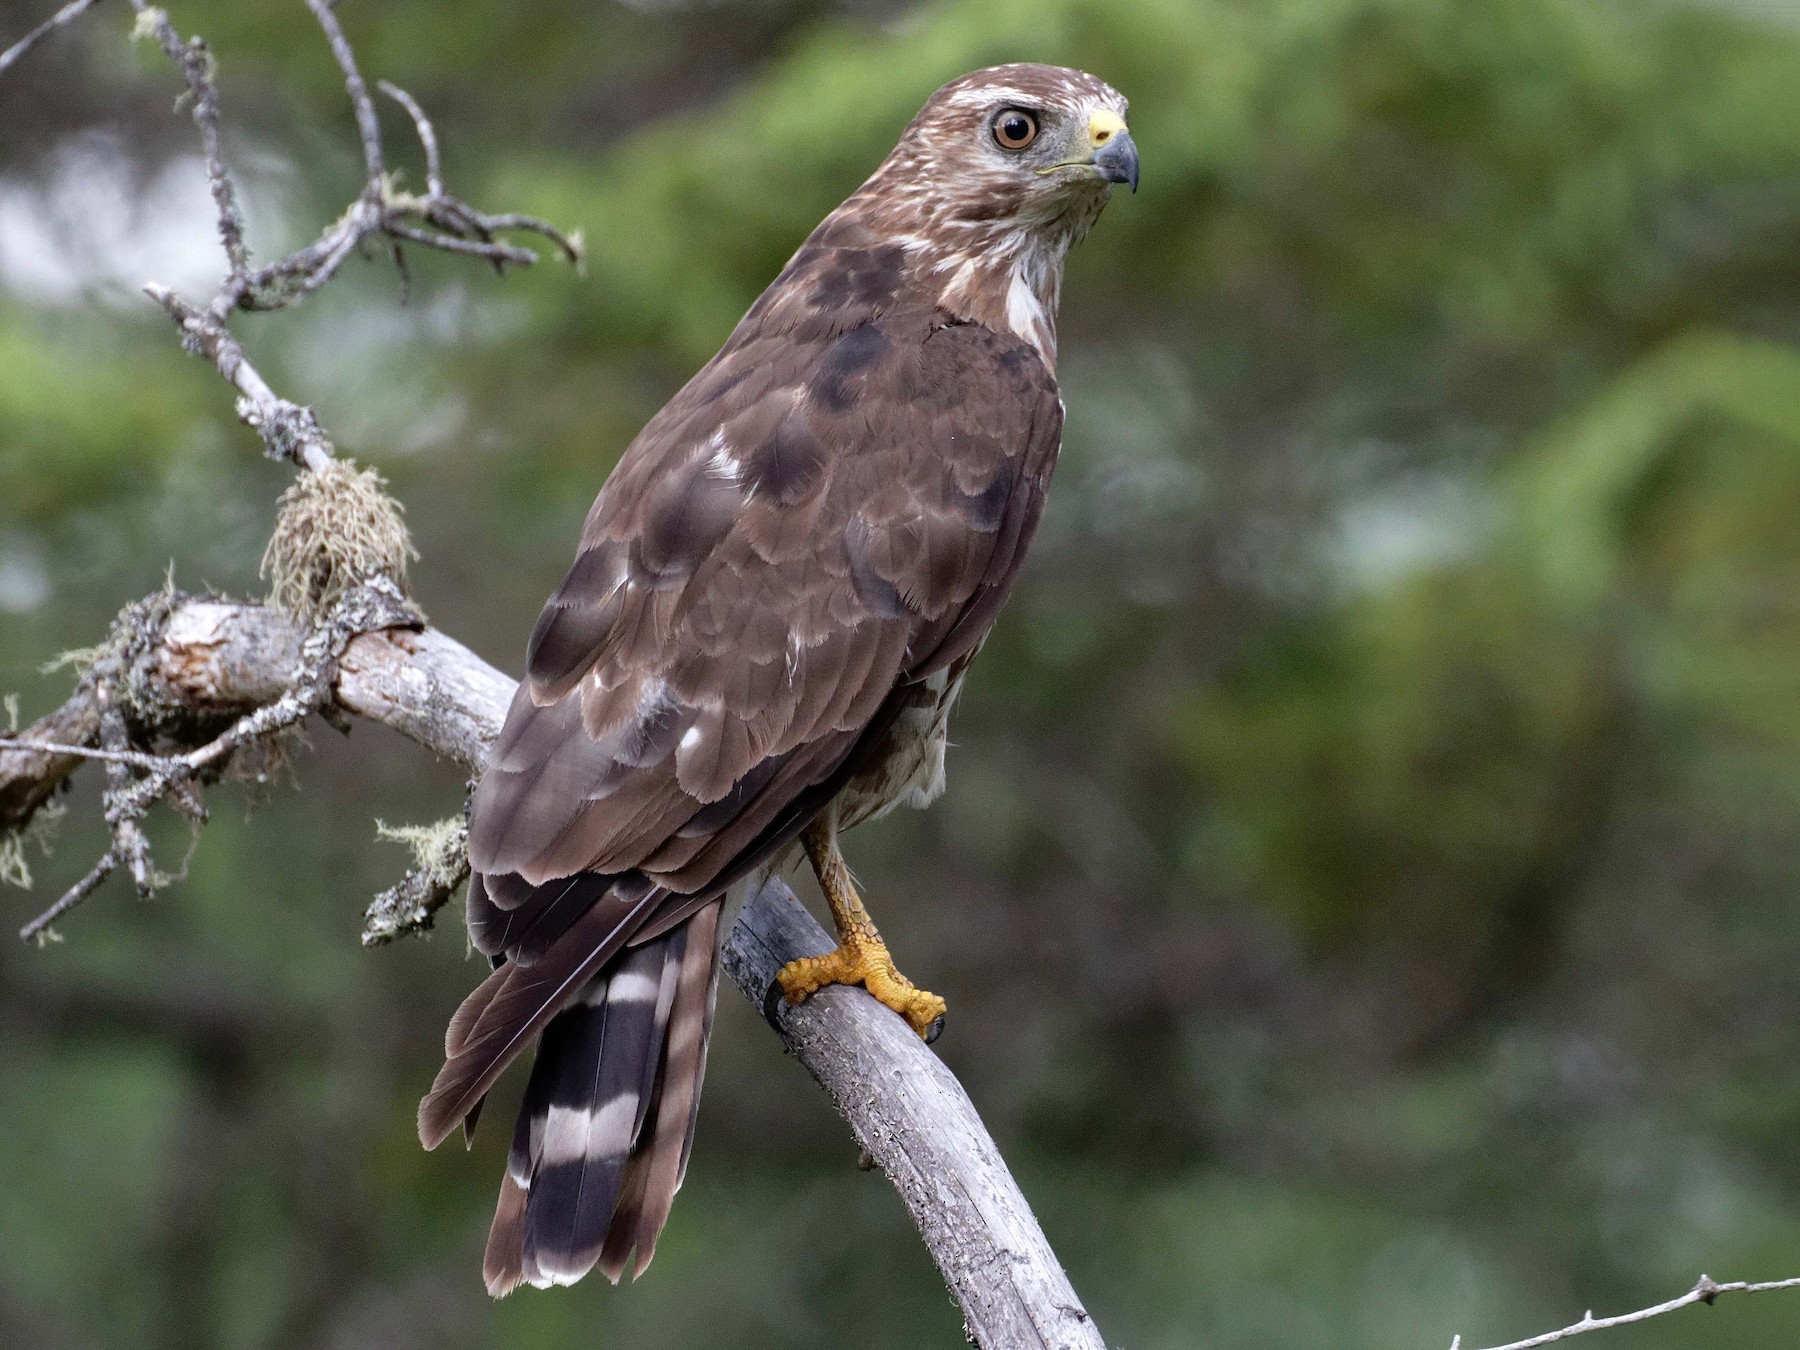 Broad-winged Hawk - James Sawusch